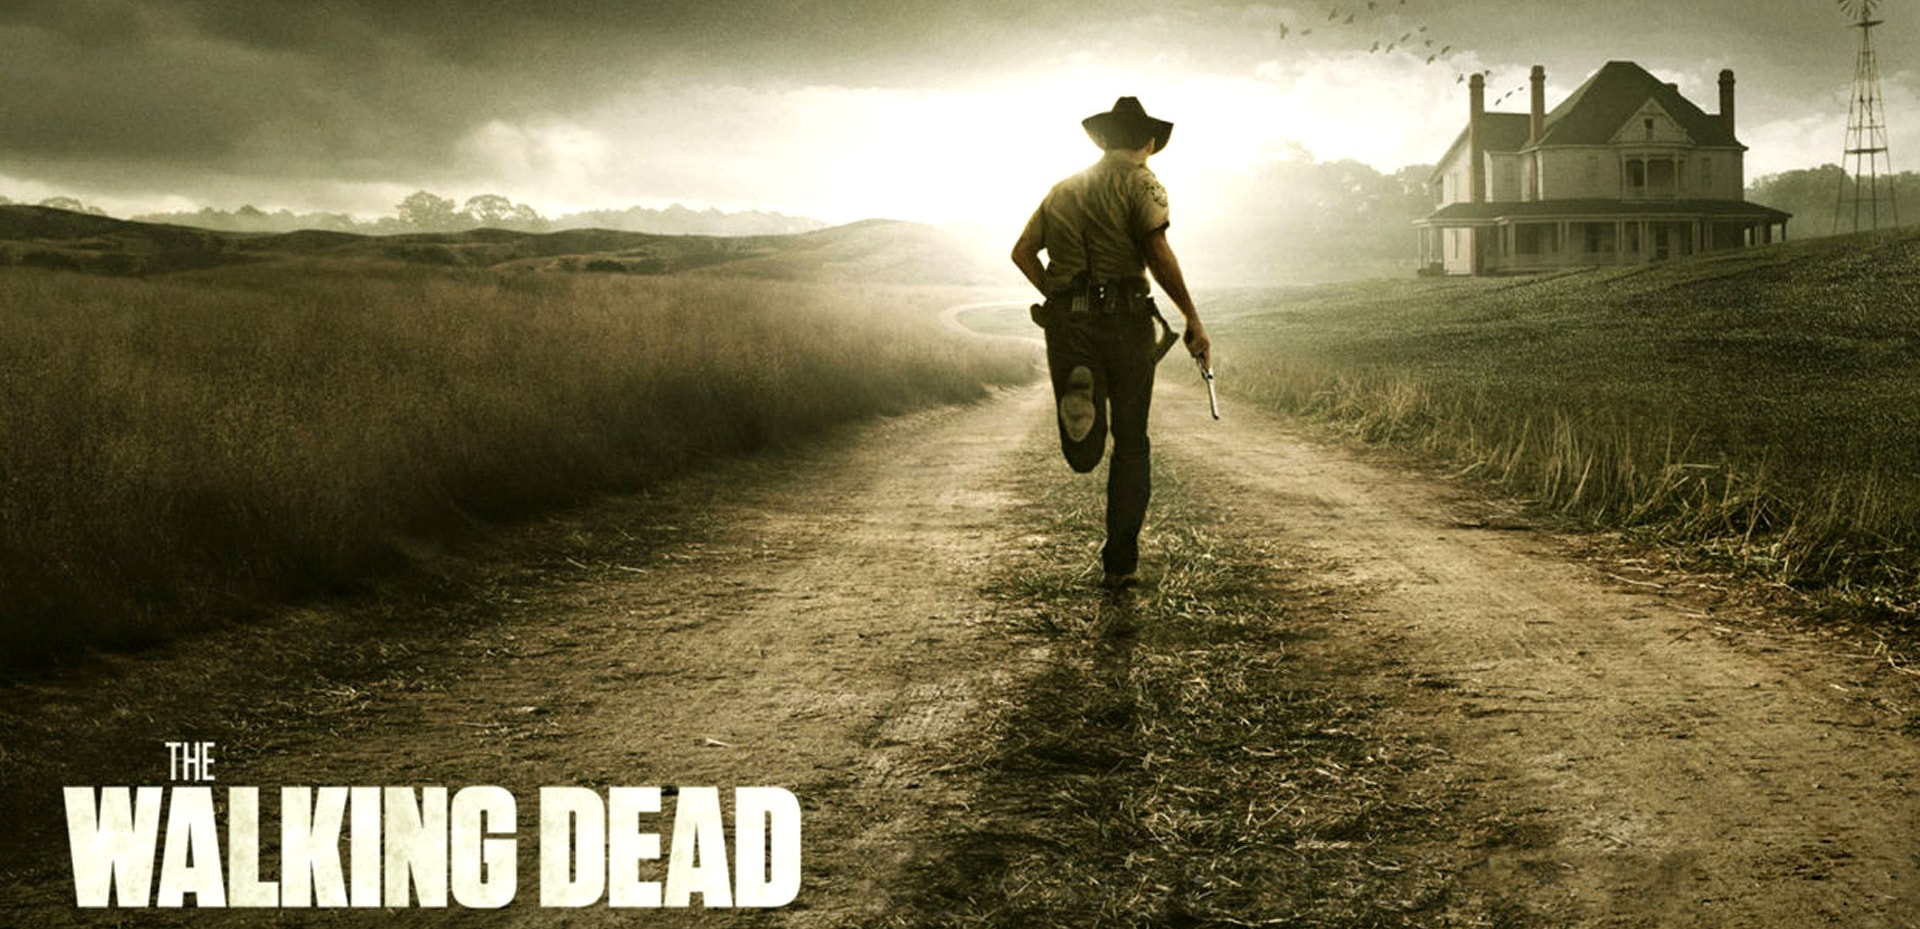 The Walking Dead HD pictures